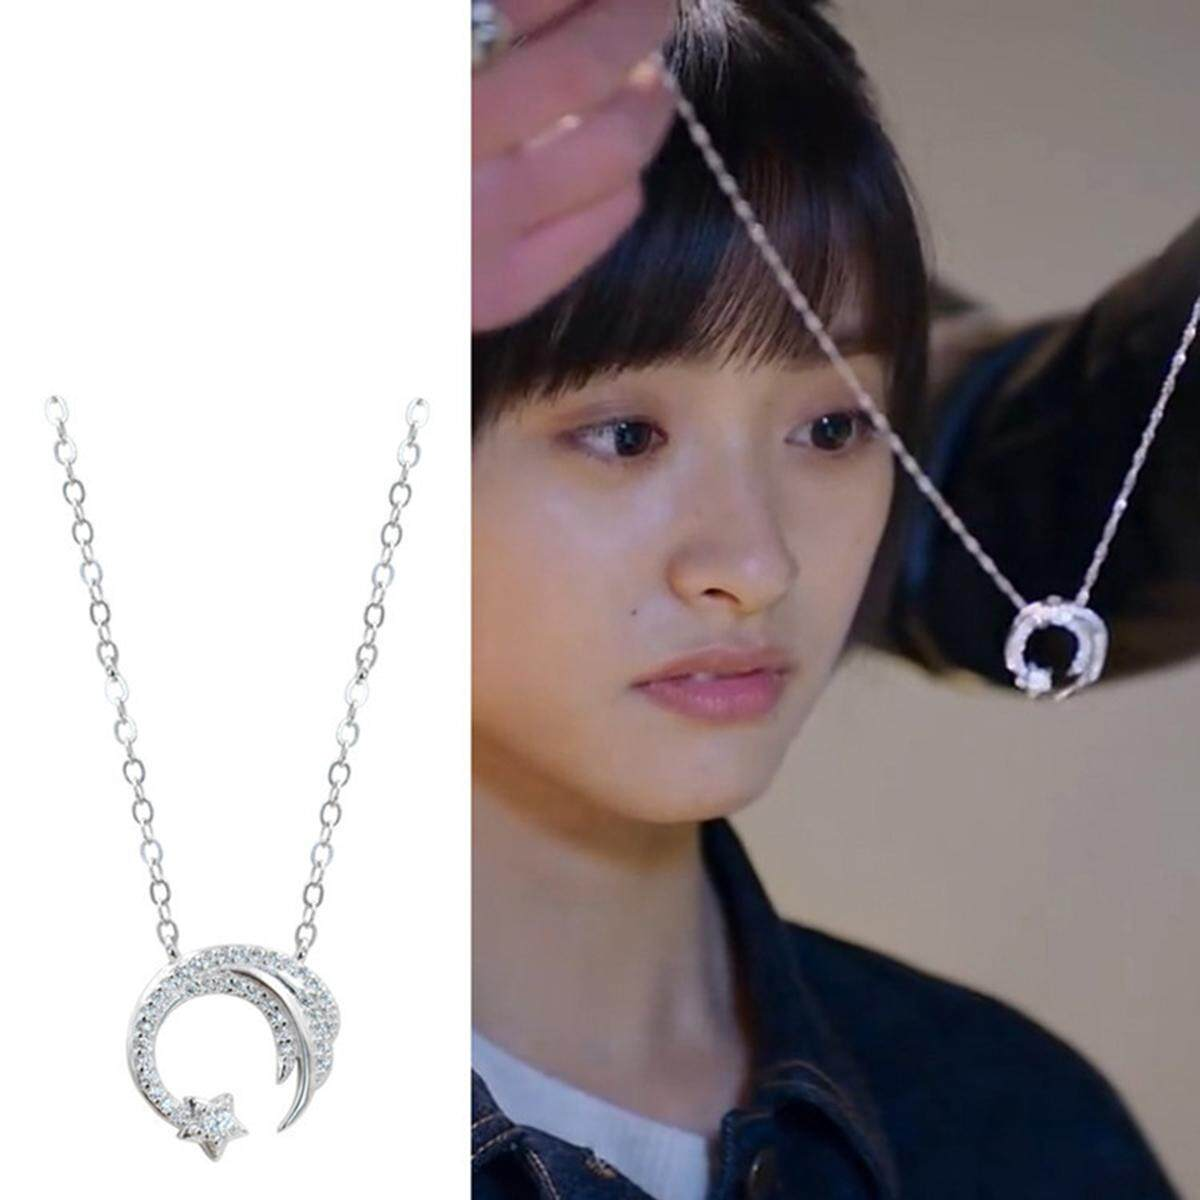 2018 Meteor Garden Silver Moon Star Necklace Jewelry Gift F4 Pop Real Rare Item By Five Star Store.